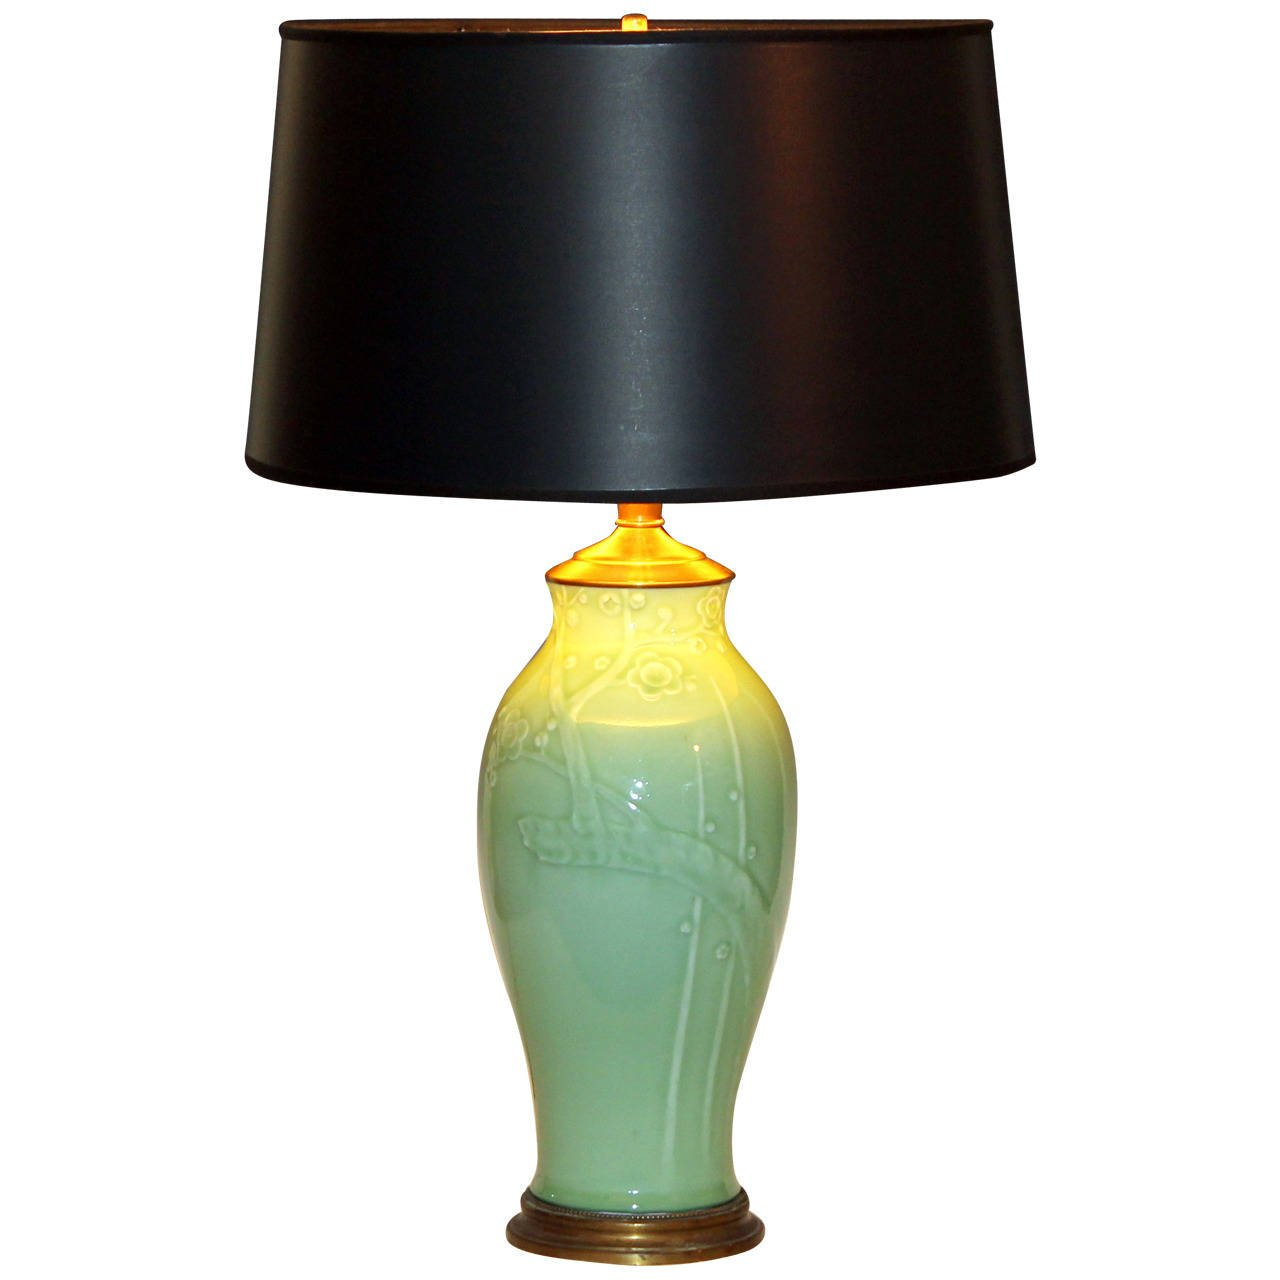 bedside modern lighting japanese lamp lampshades delightful porcelain floor furniture buffet style oriental asian walmart and lamps set sydney table australia com